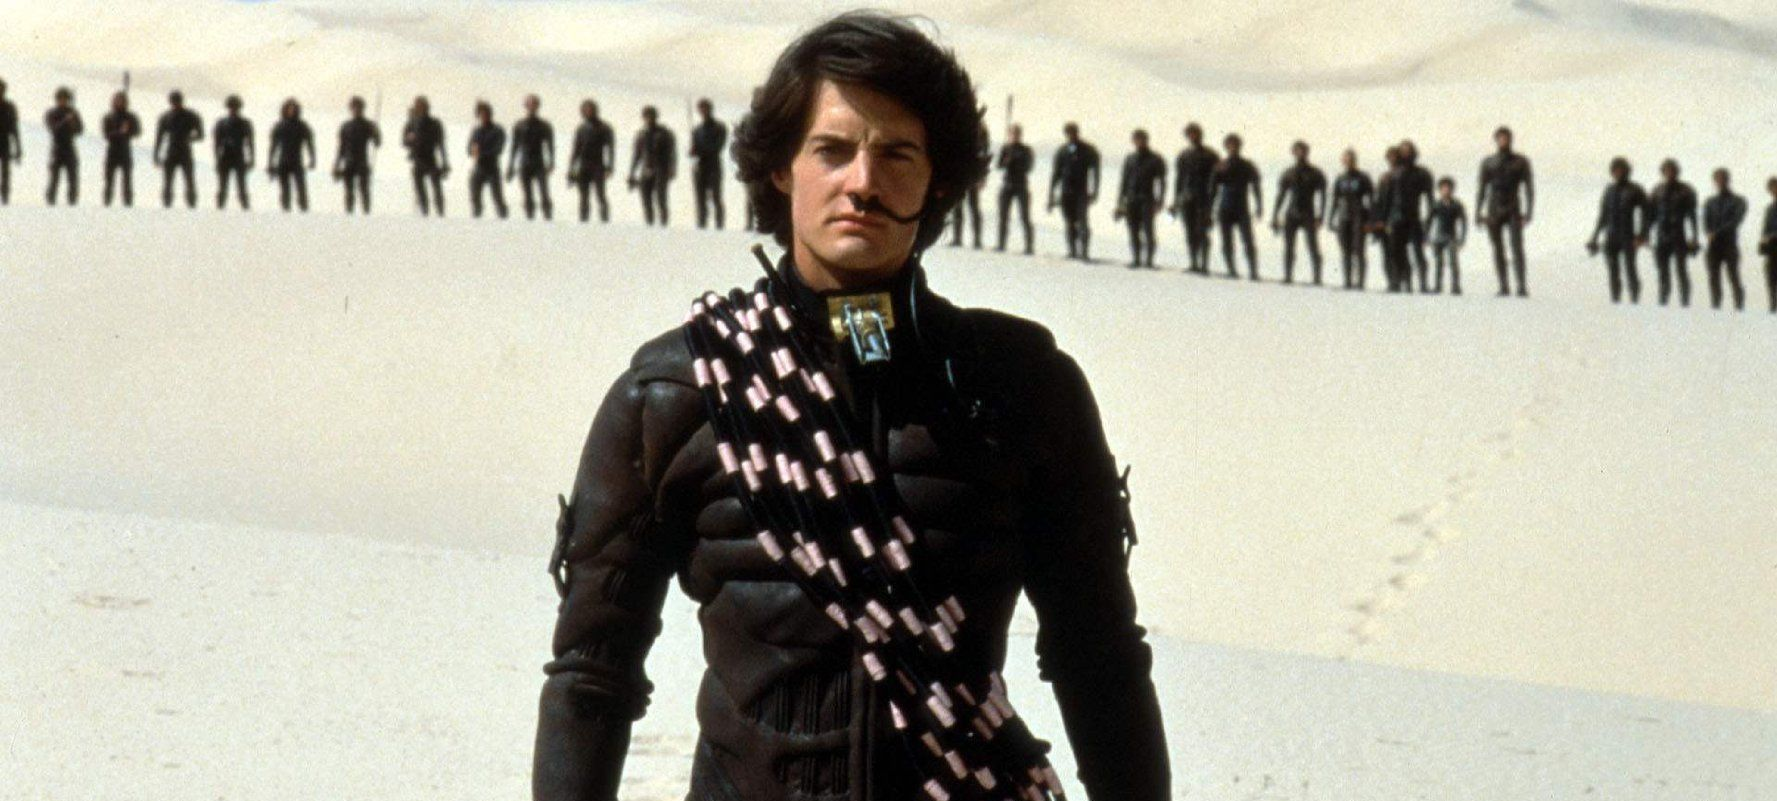 Dune and religious appropriation